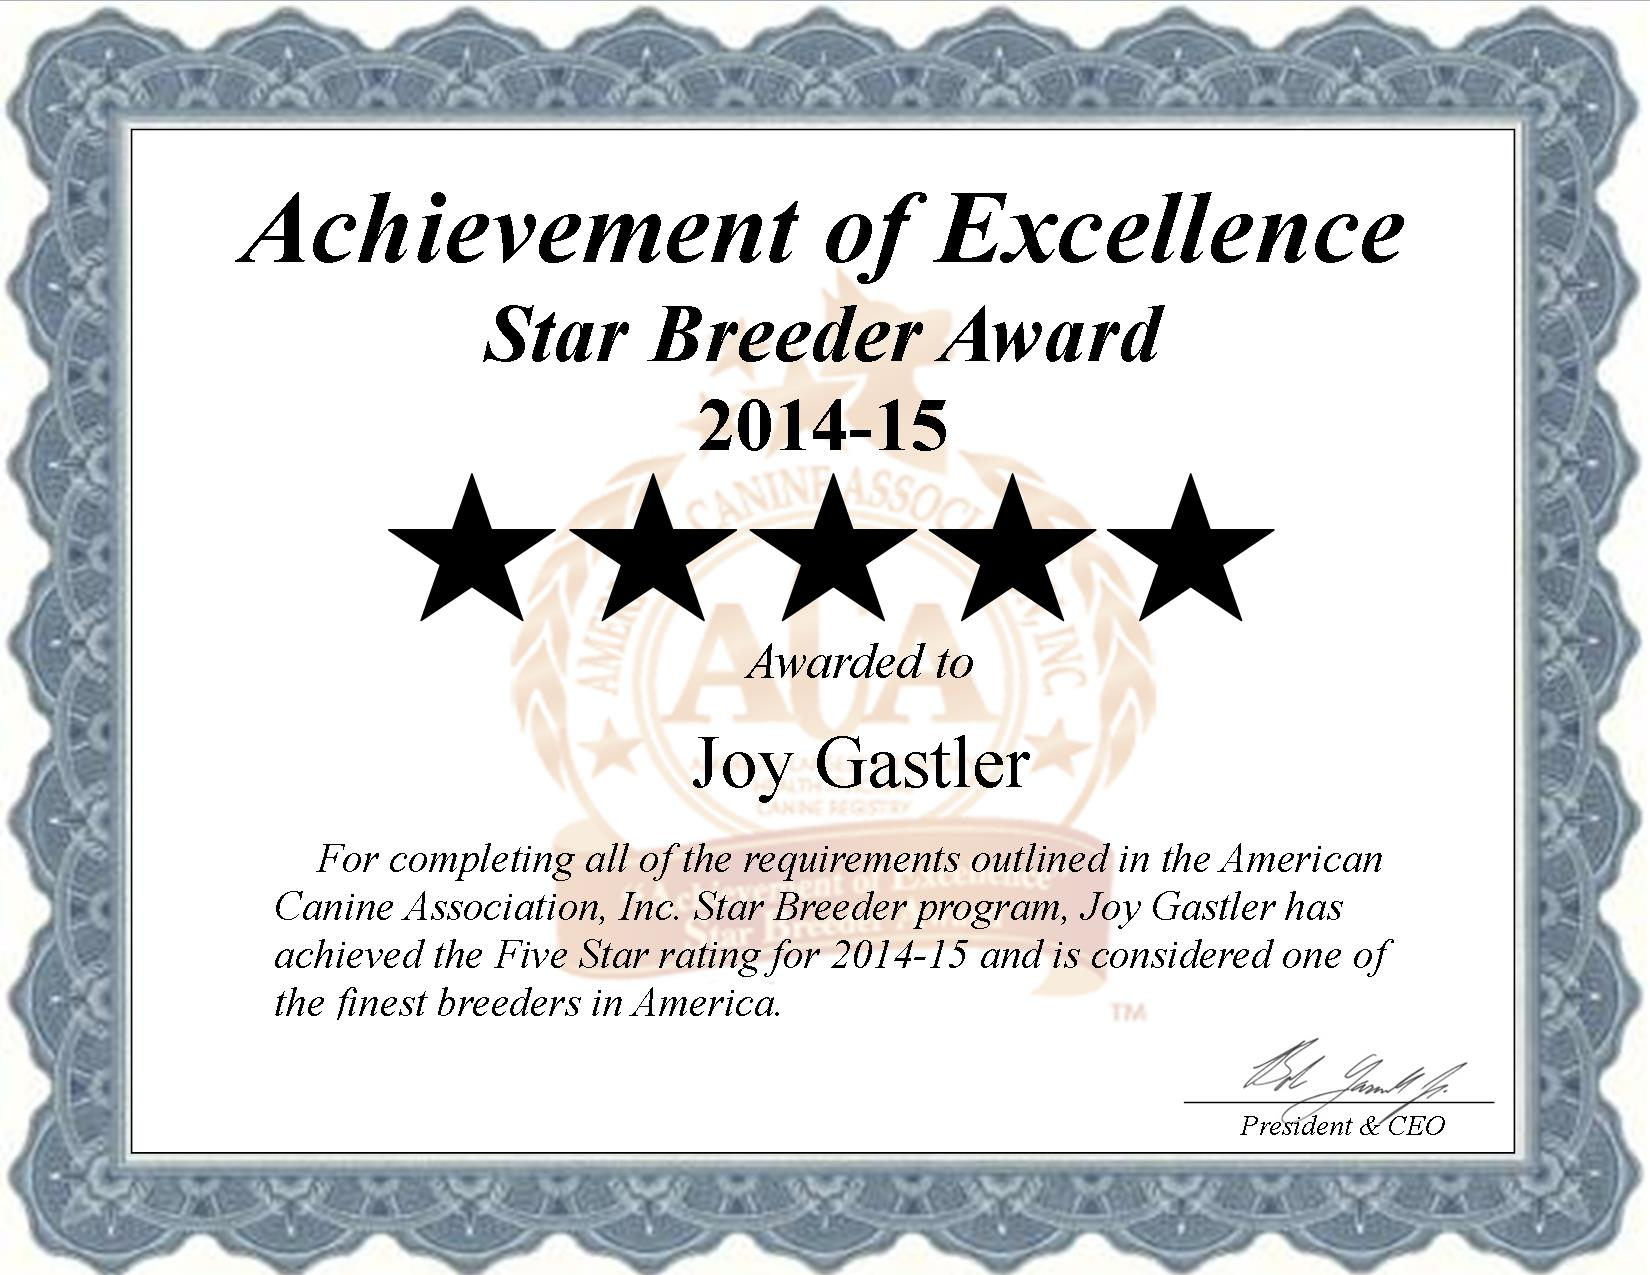 joy, gastler, dog, breeder, joy-gastler, dog-breeder, MO, USDA, Licensed, Inspected, 43-A-0916, 43a0916, number, #, kennel, puppies, litter, agriculture, department, dept, dogs, star, breeder, breeders, Madison, county, Missouri, USA, loving, American Canine Association, Program, Dog, ACA, breeding, litter, application, registration, requirements, records, best, finest, achievement, excellence, health, shows, education, puppymill, breeder, mill, 5